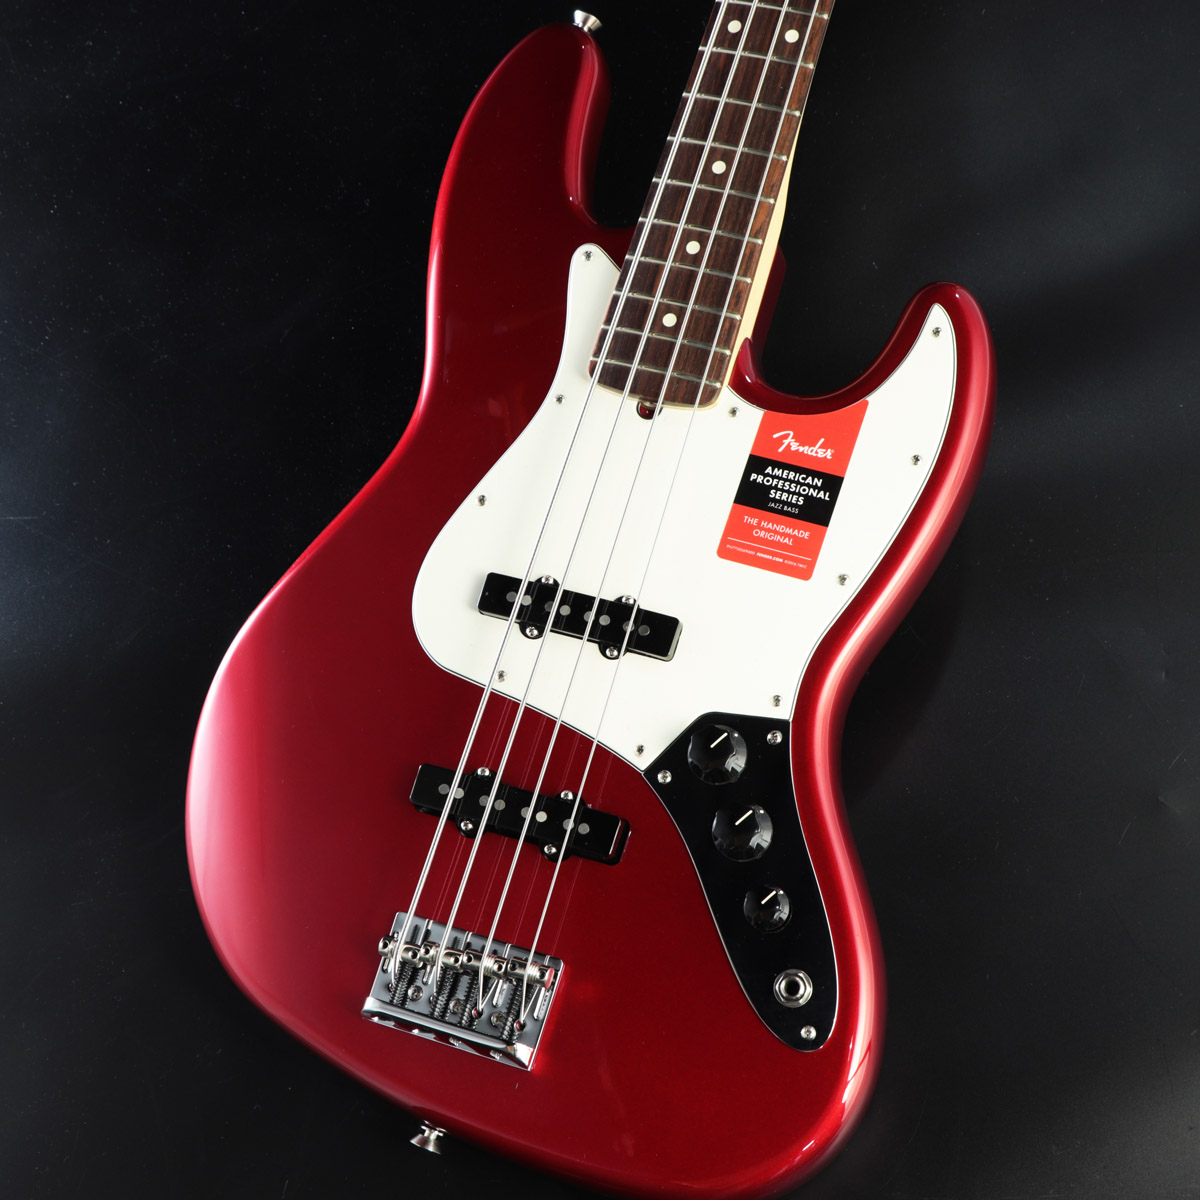 Fender フェンダー / American Professional Series Jazz Bass Candy Apple Red / Rosewood 《s/n:US17054275》 【心斎橋店】